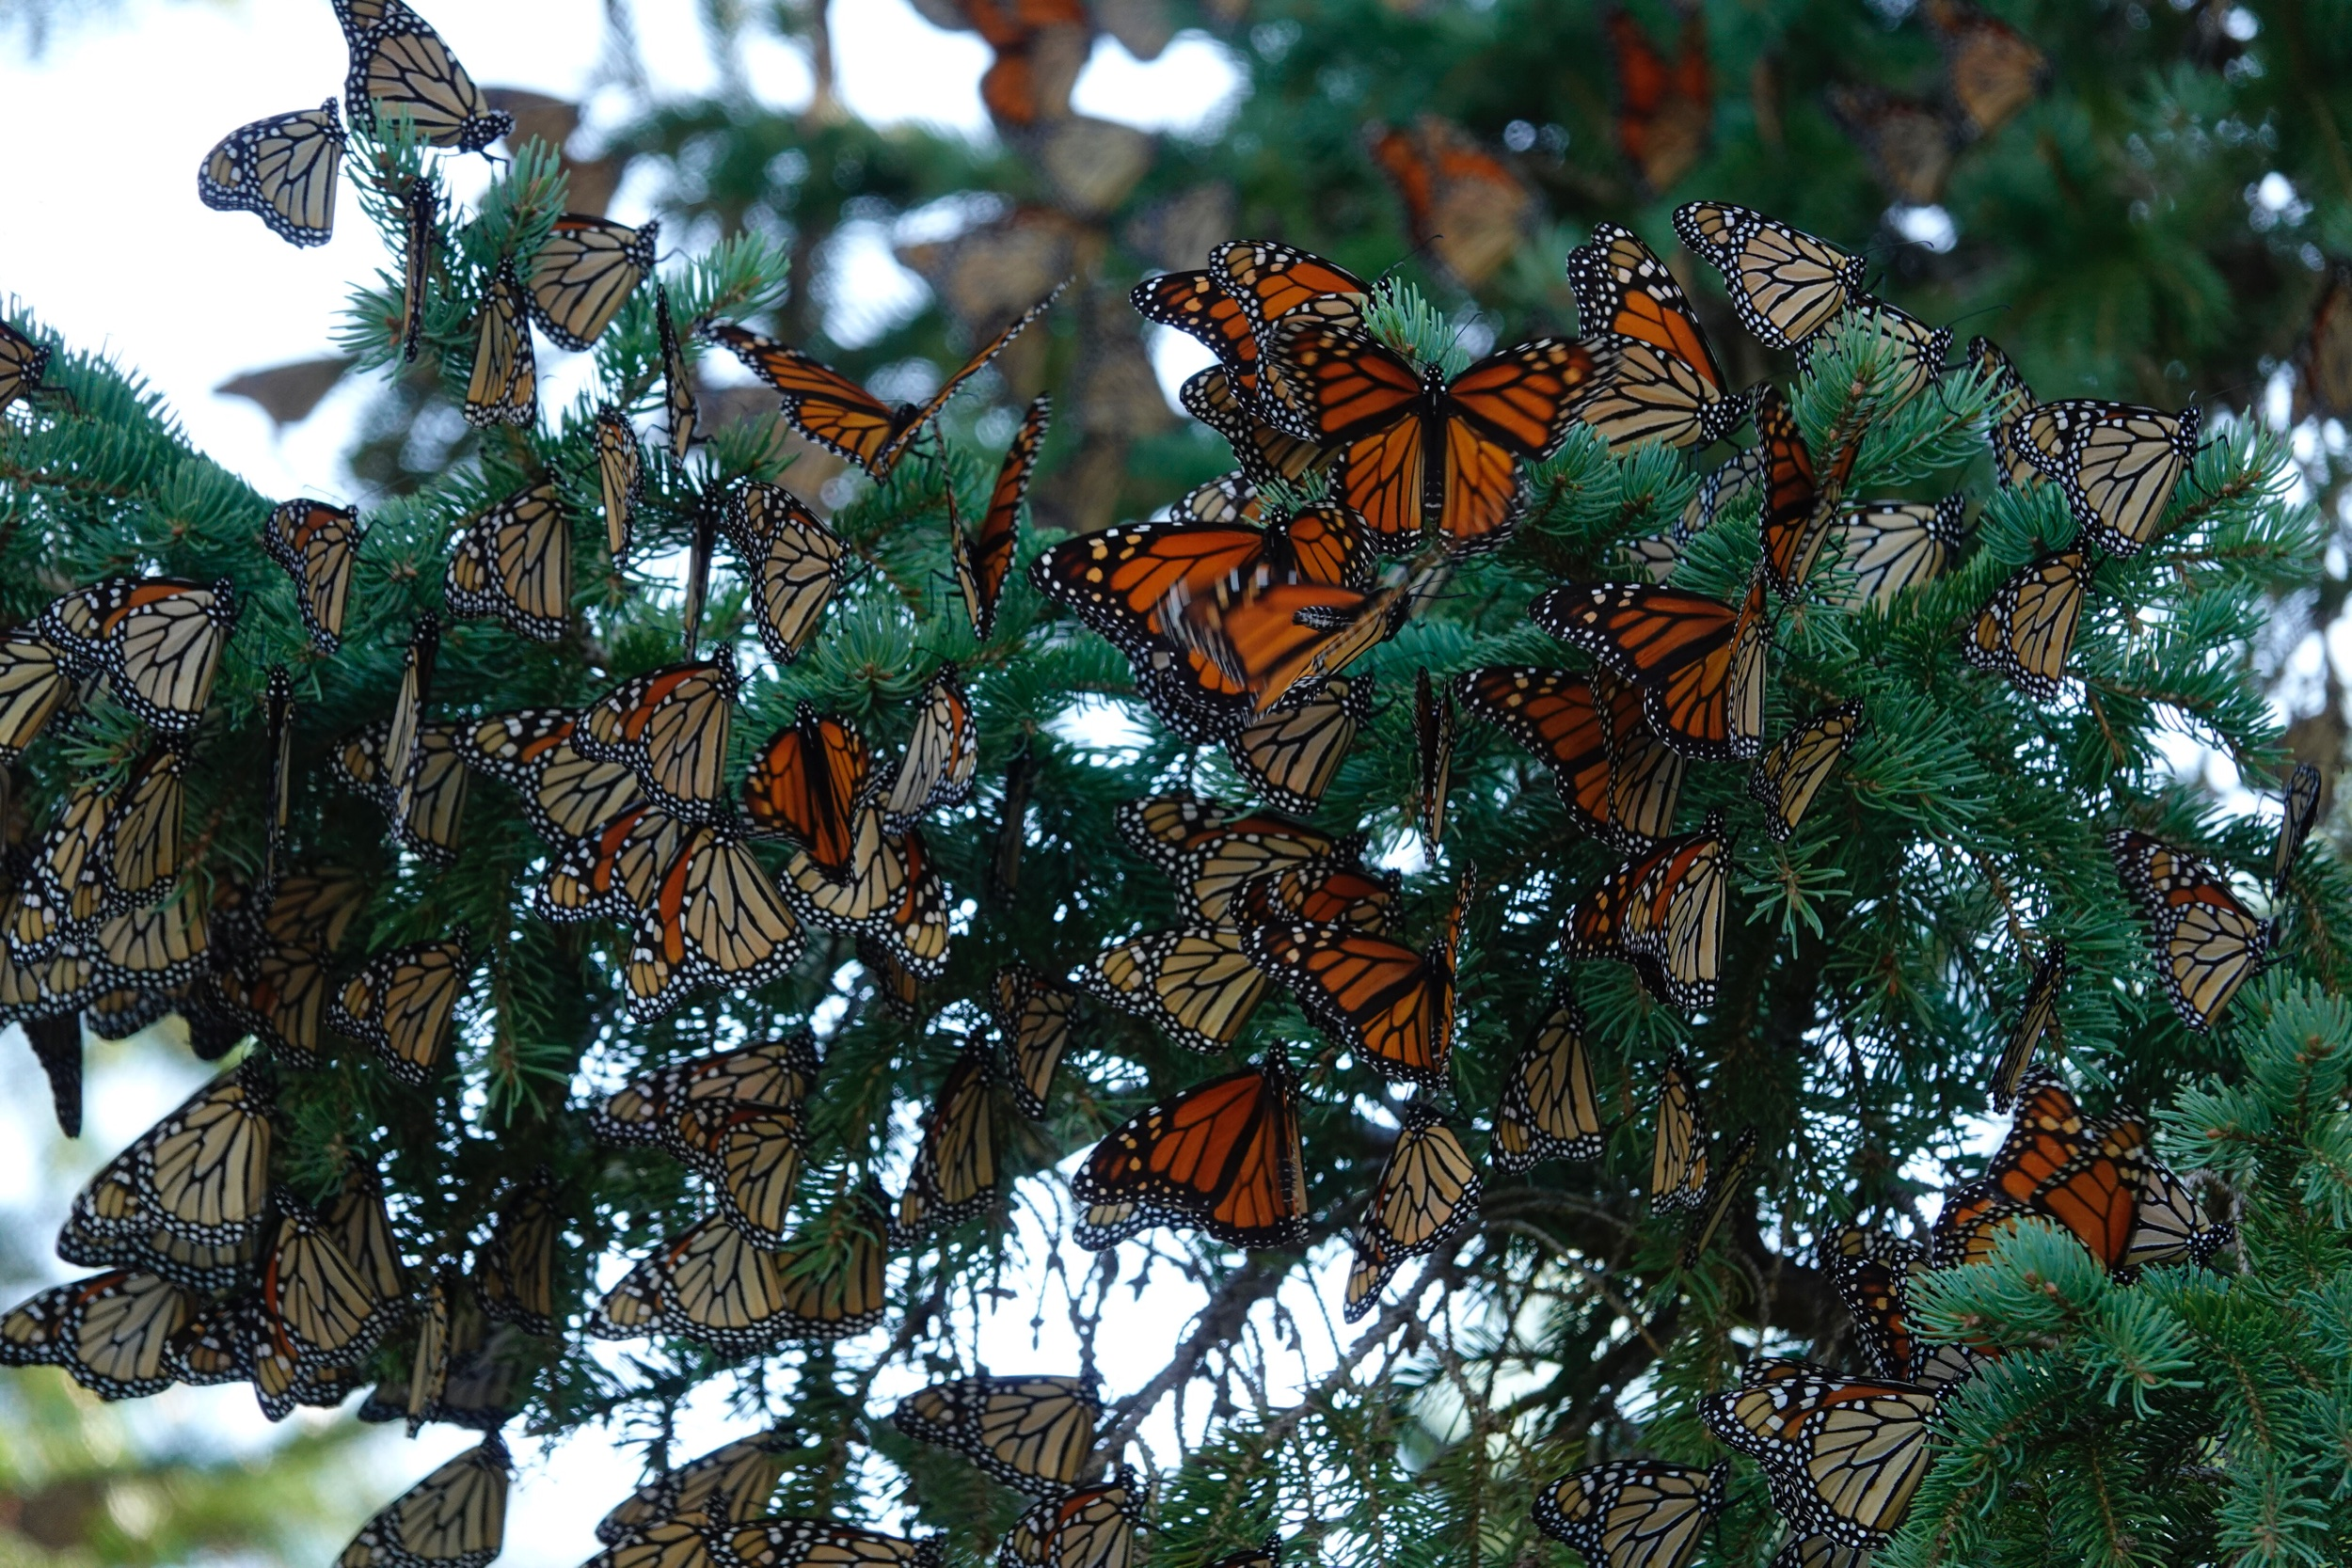 I feel blessed to see a roost of monarch butterflies.